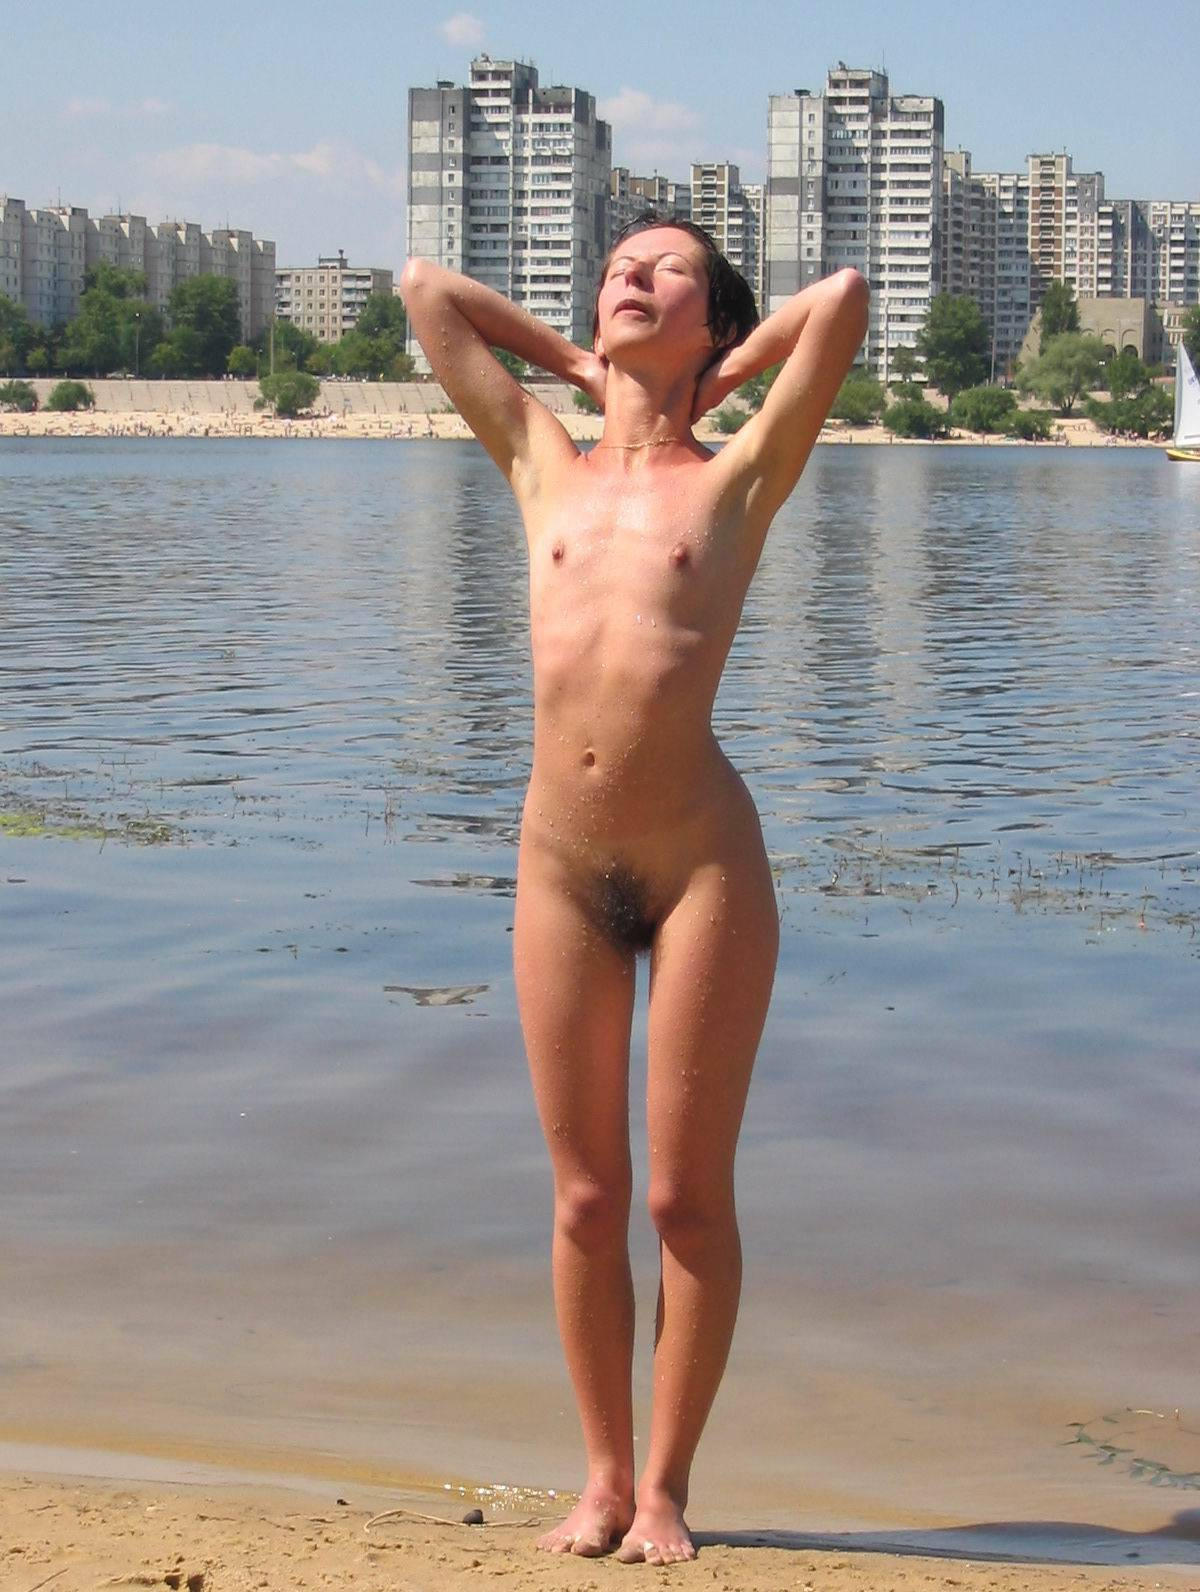 Nudist Pics Kiev Water-Front Bathing - 2